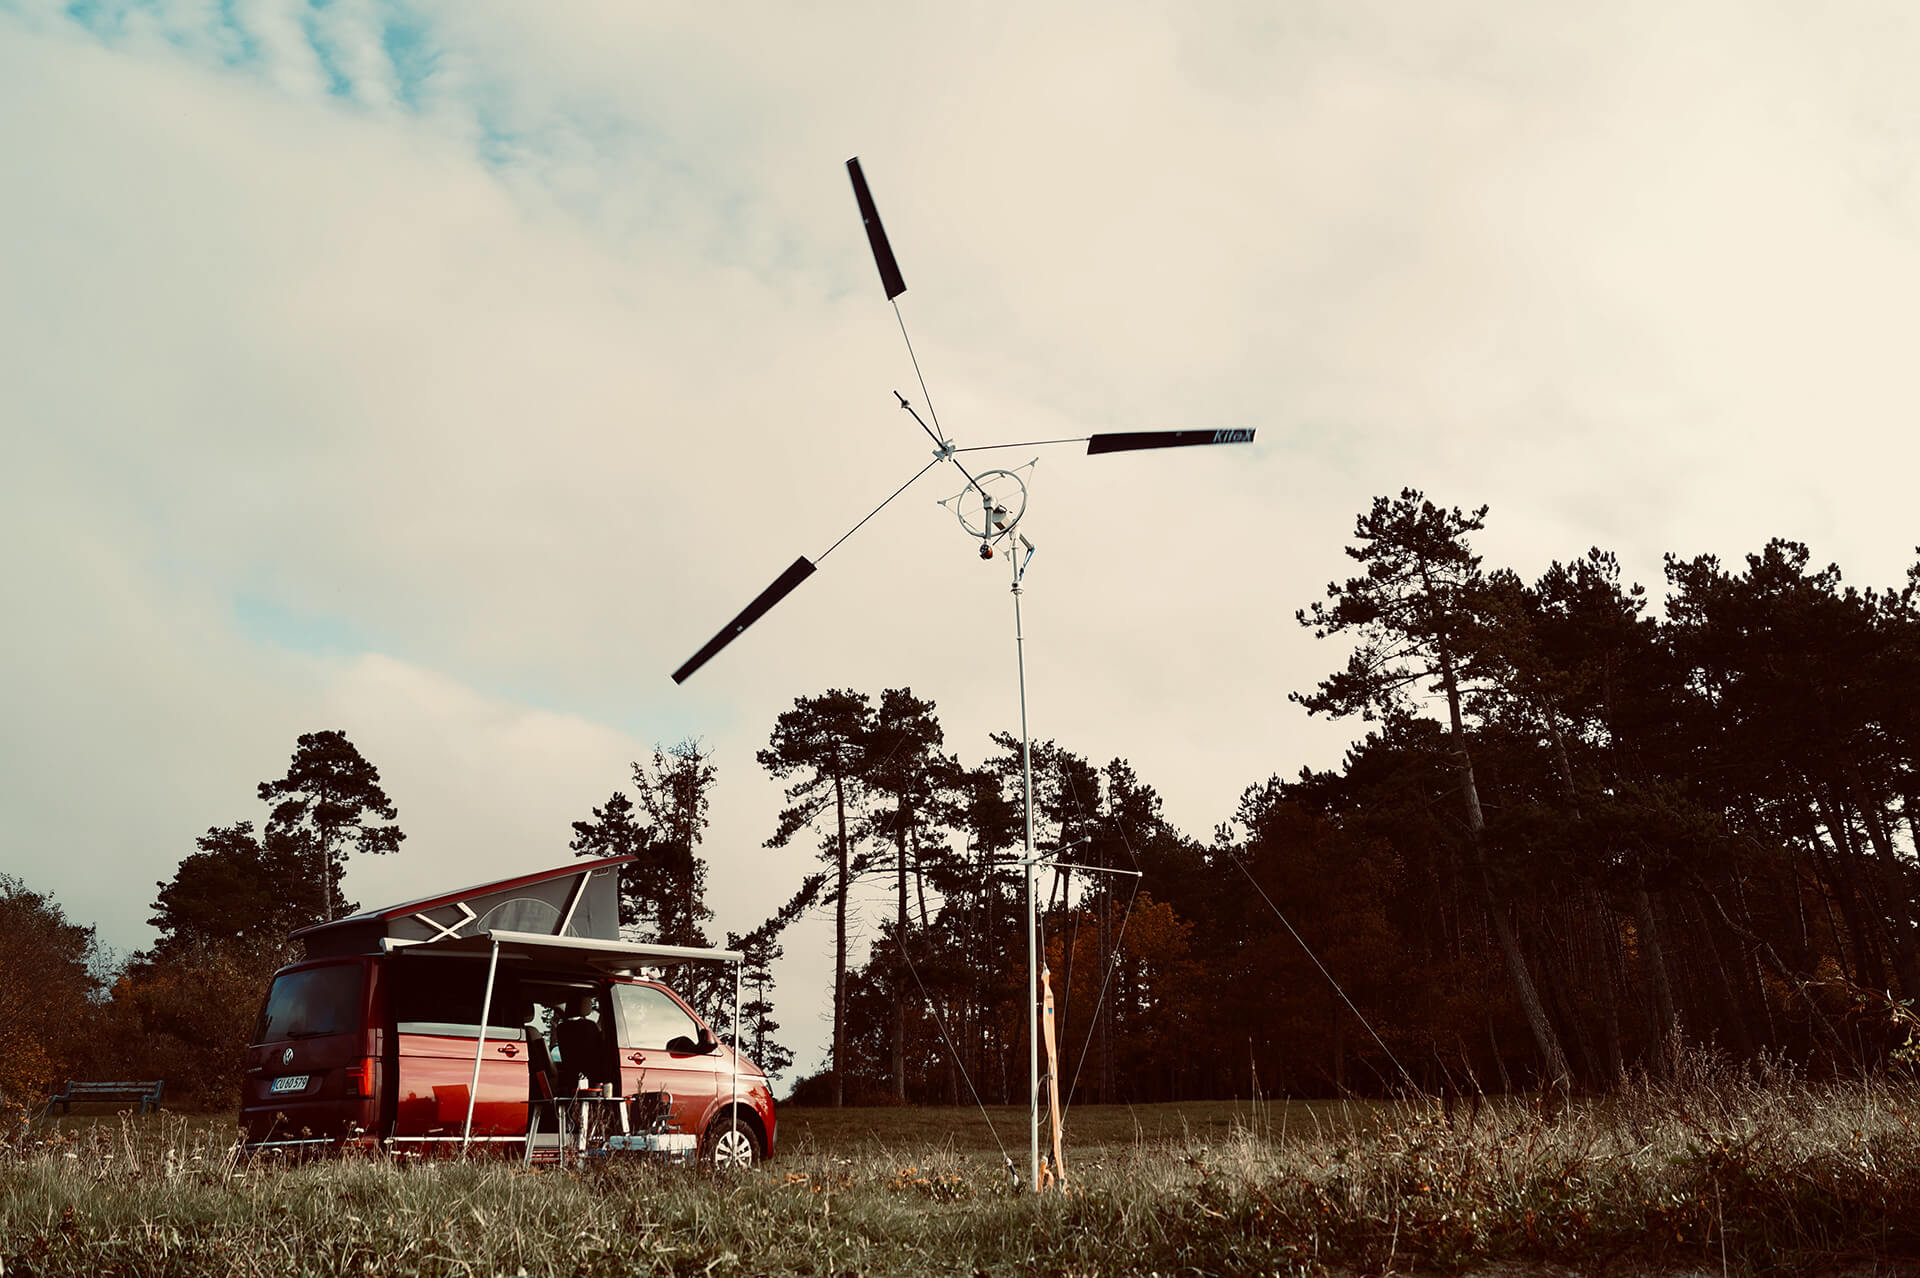 Wind Catcher is durable and can function quietly in virtually any setting | KiteX | Denmark | STIRworld